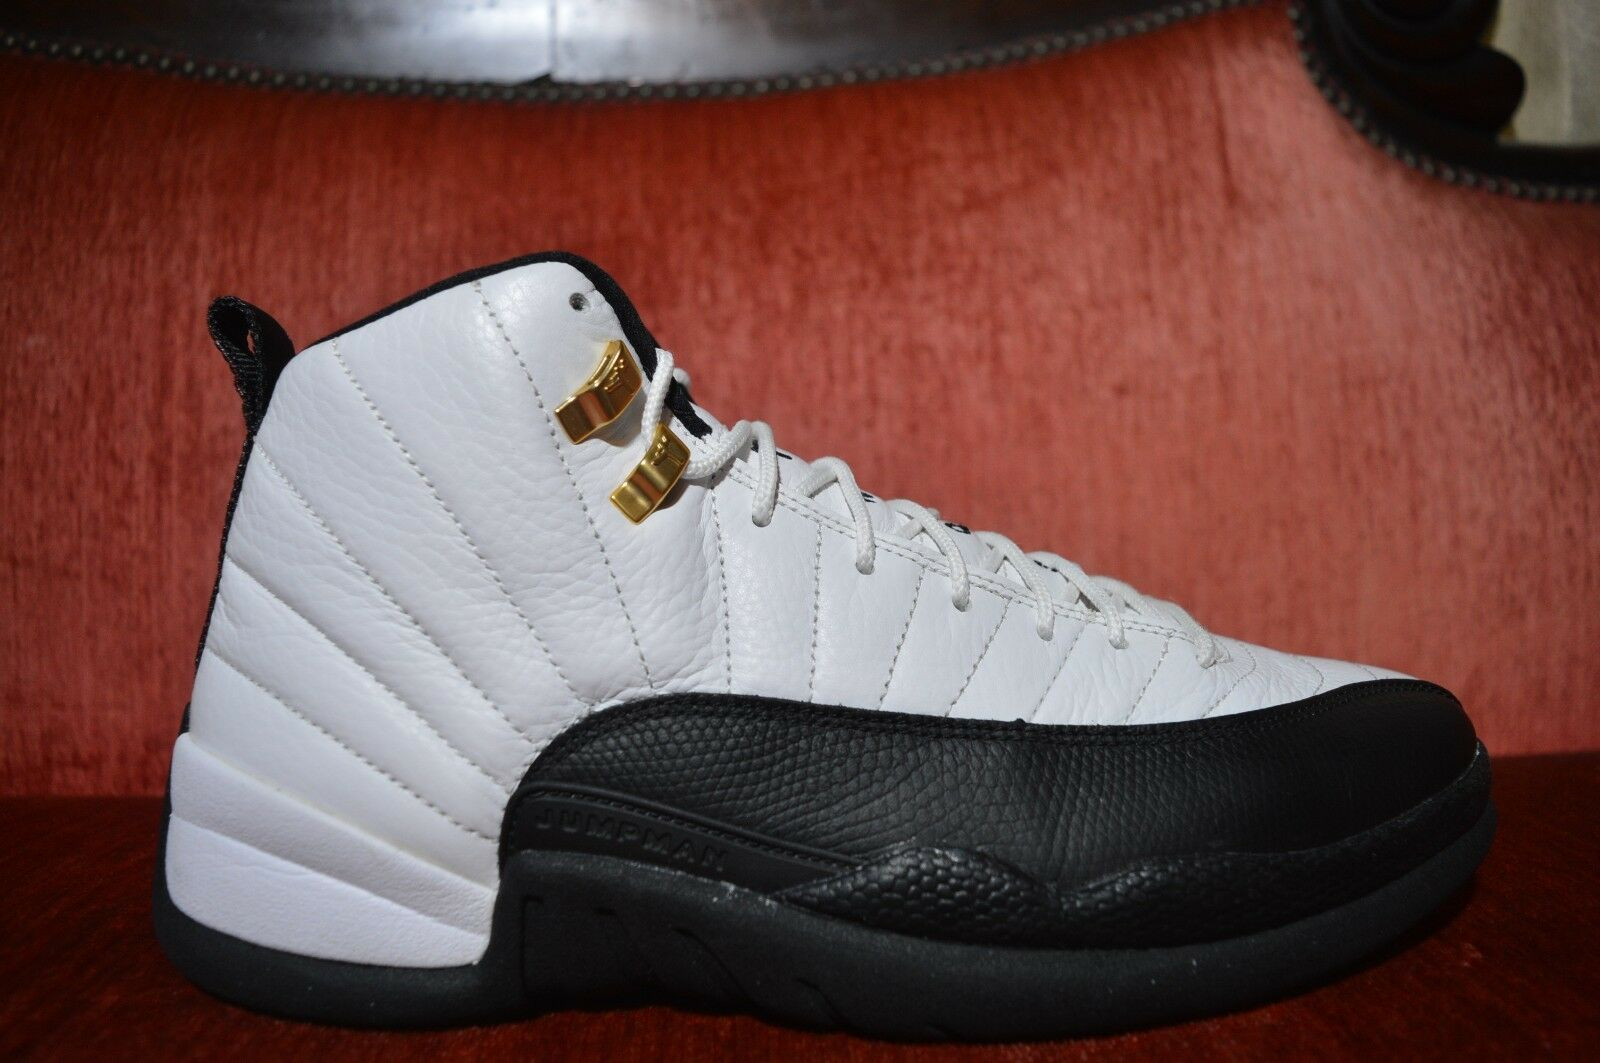 WORN ONCE Nike Air Jordan 12 Countdown Pack Taxi Size 10.5 Style 130690 109 125